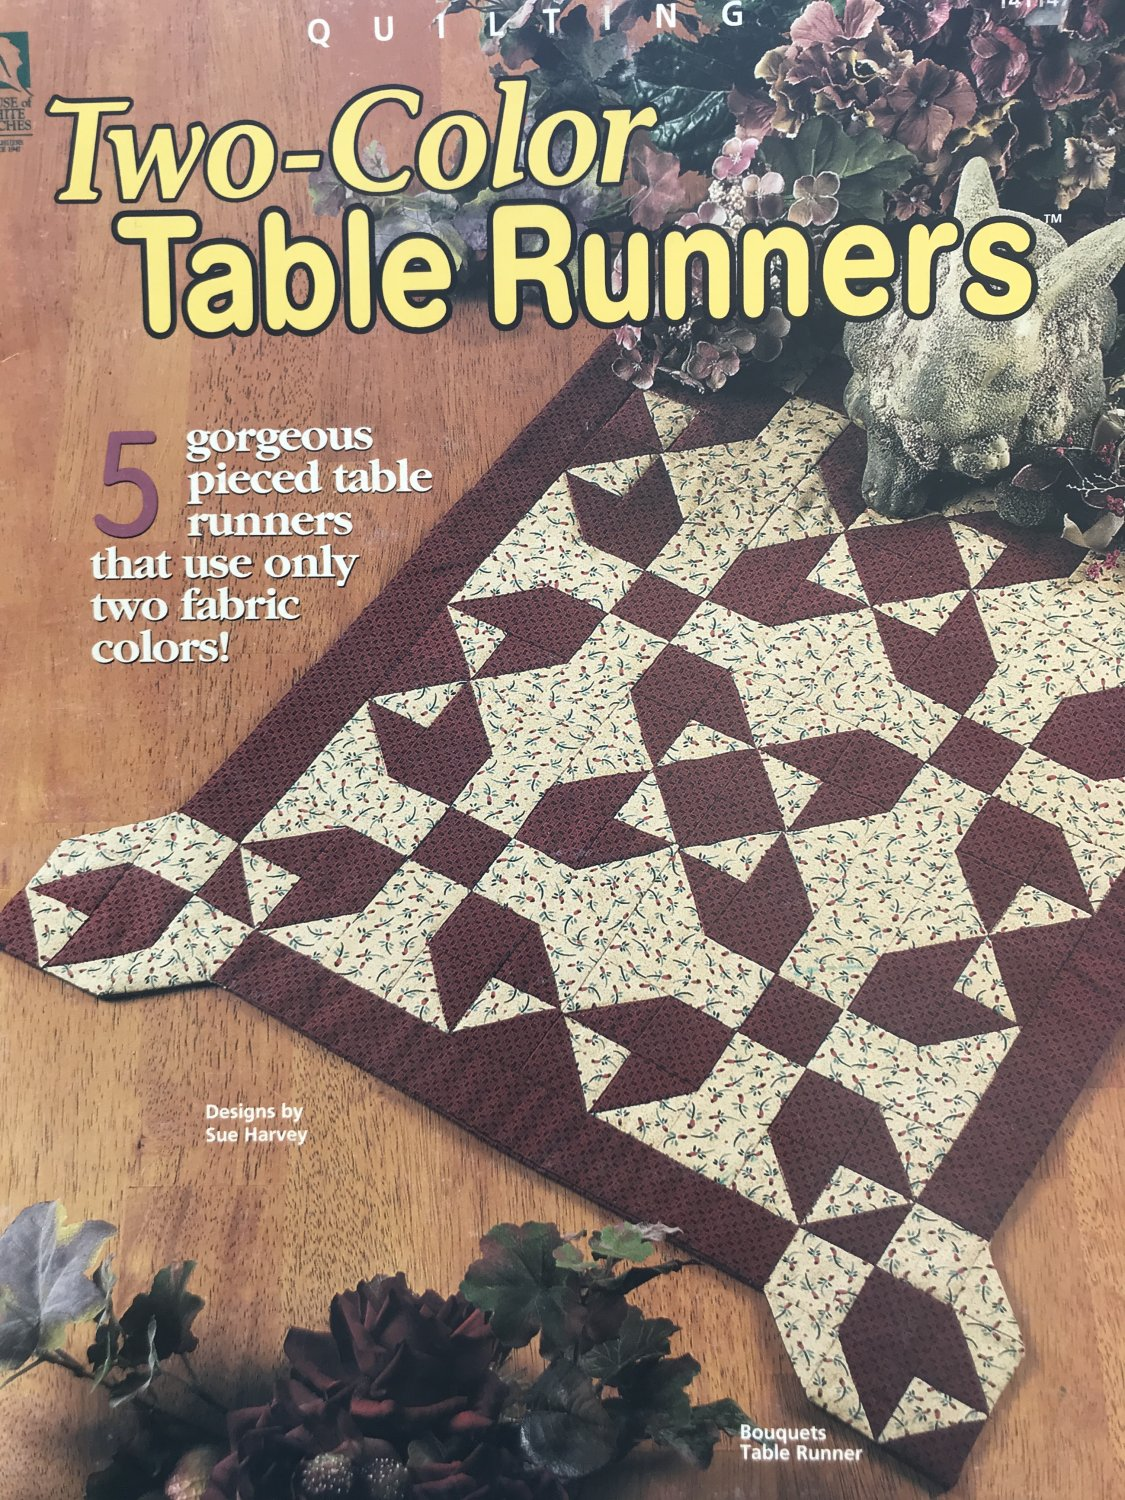 House of White Birches 141147 Quilting Two-color Table Runners Sue Harvey